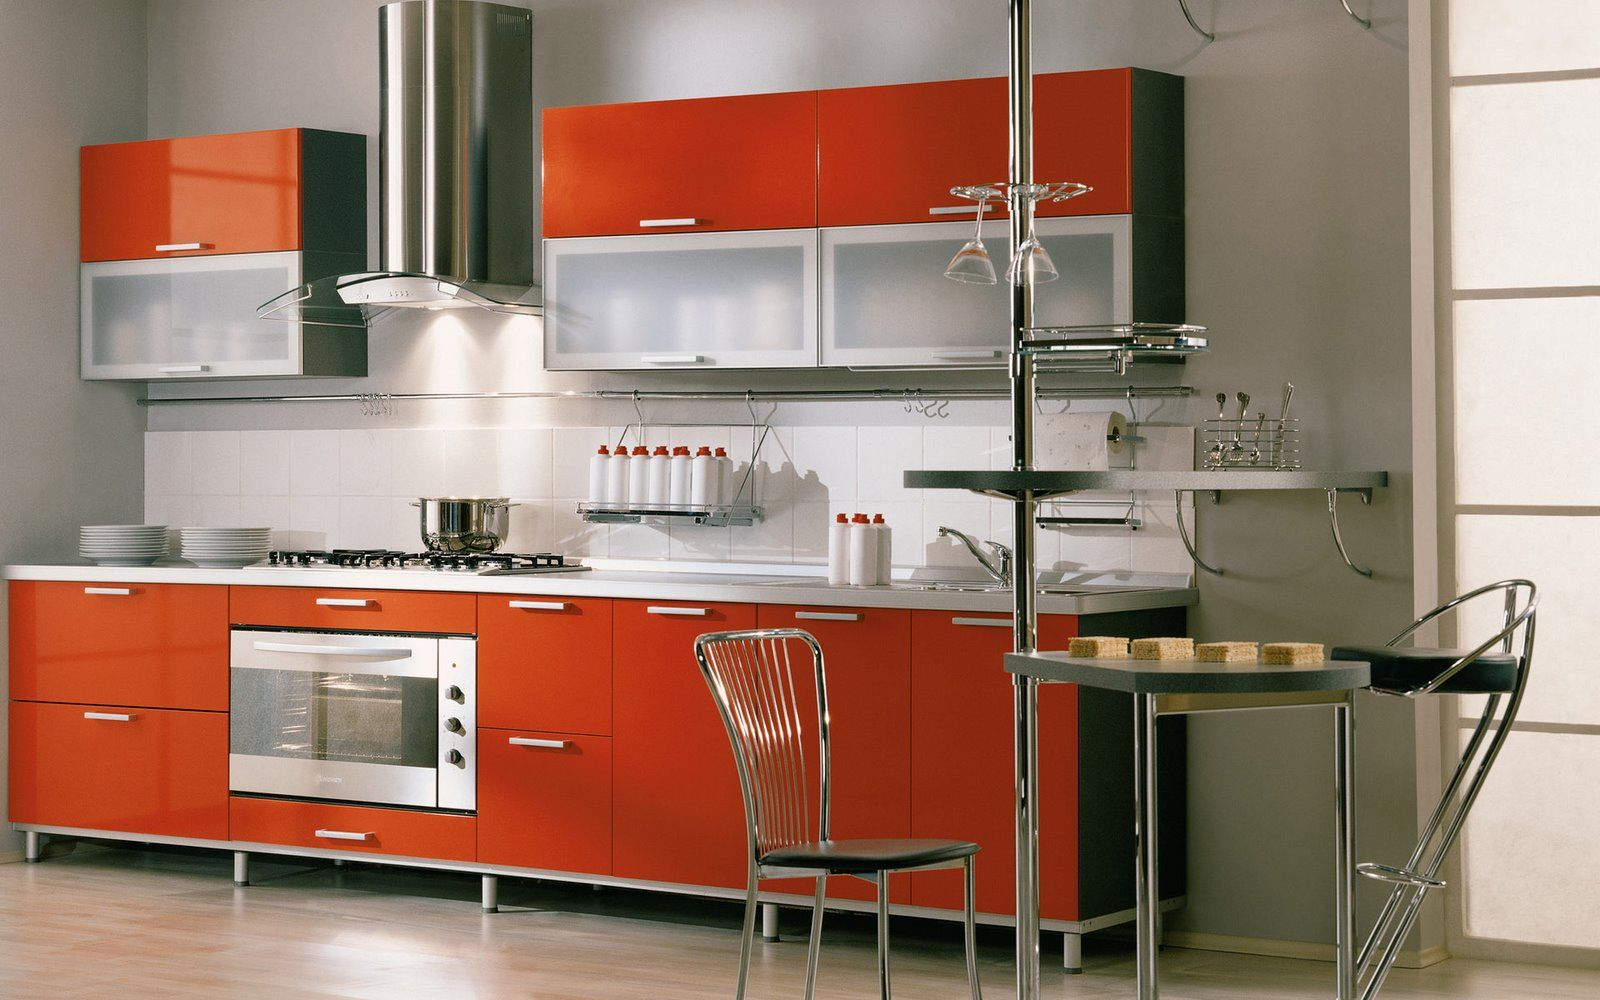 Best Ikea 2014 Kitchen Catalog  Kitchen Design And Layout Ideas Impressive Modern Kitchen Design Ideas 2014 Design Ideas